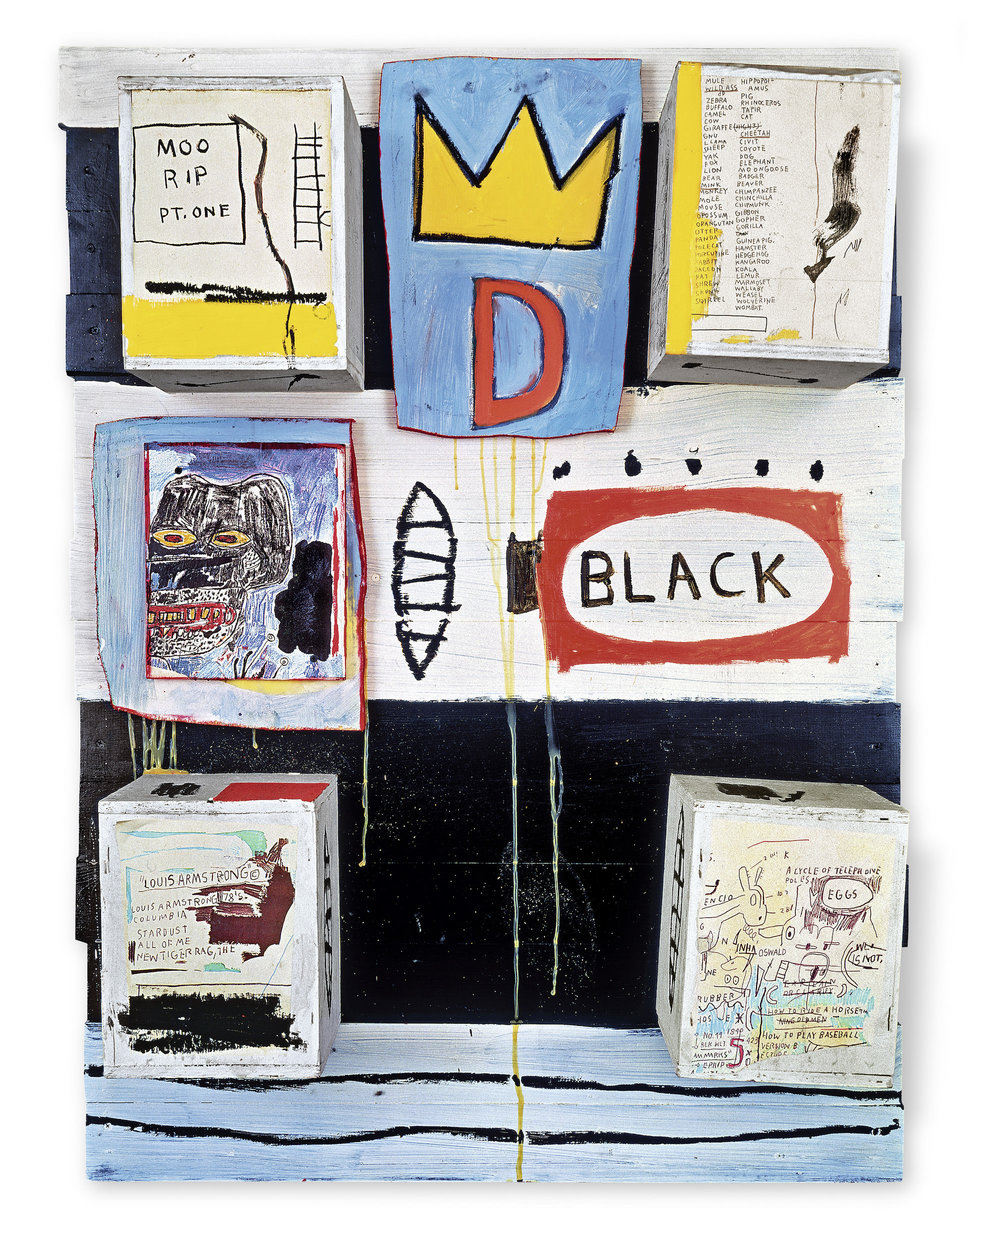 Black, 1986 Acrylic, oilstick, photocopy collage, and wood collage on panel, 127 x 92 x 21.5 cm / 50 x 36 1/4 x 8 1/2 inches Photo: Courtesy Galerie Enrico Navarra, Paris Copyright: © The Estate of Jean-Michel Basquiat. Licensed by Artestar, New York